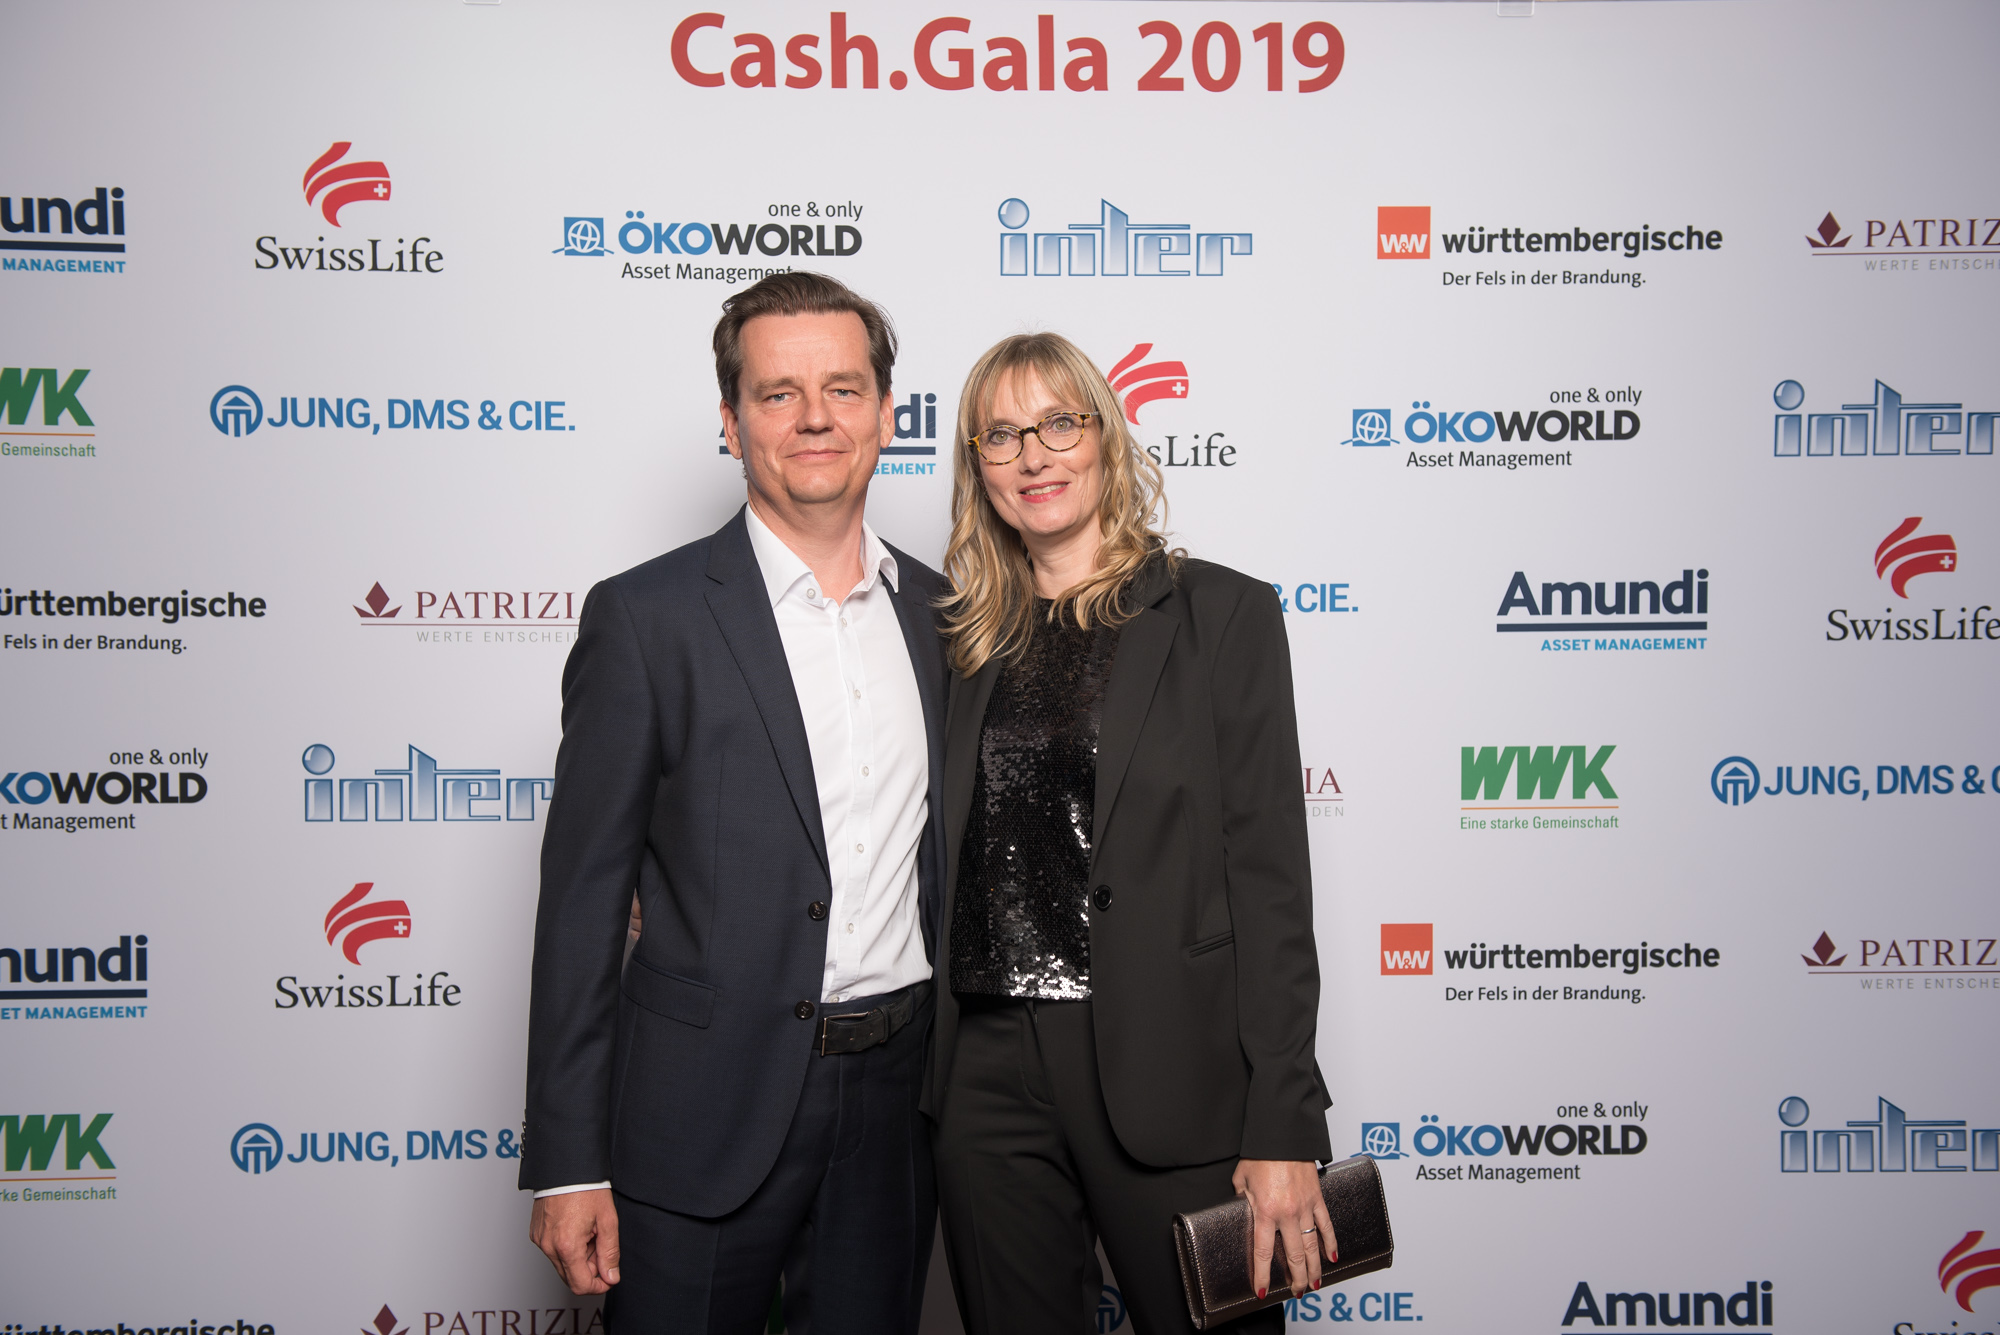 CashGala 2019 0052 AM DSC7094 in Cash.Gala 2019